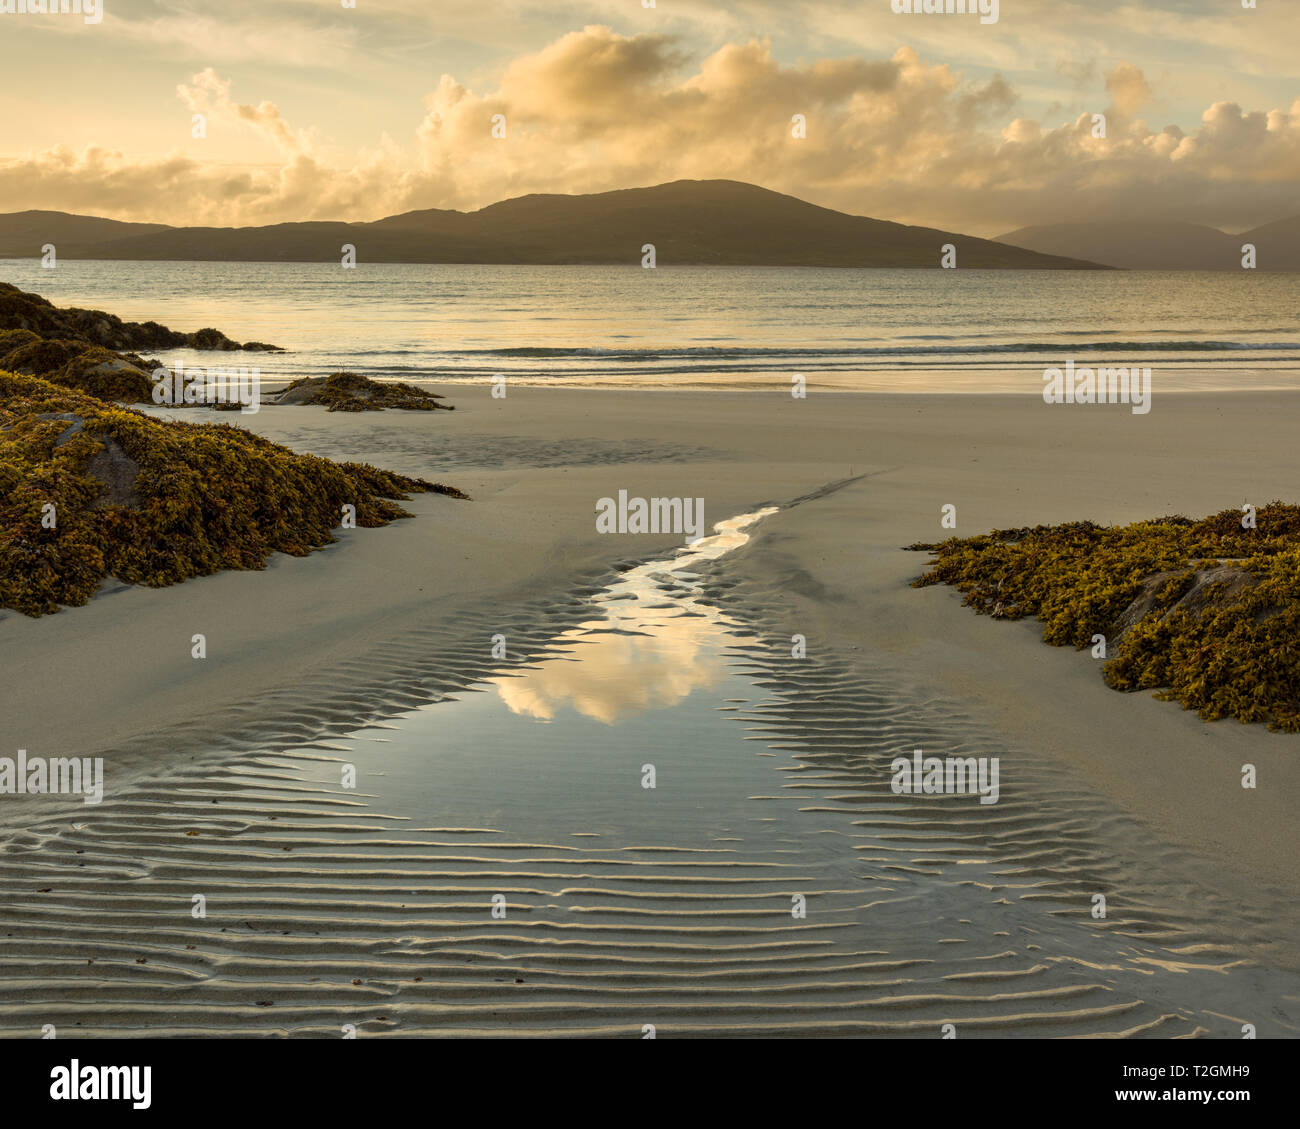 View out from Seilebost beach at sunset, Isle of Harris, Outer Hebrides, Scotland, UK - Stock Image